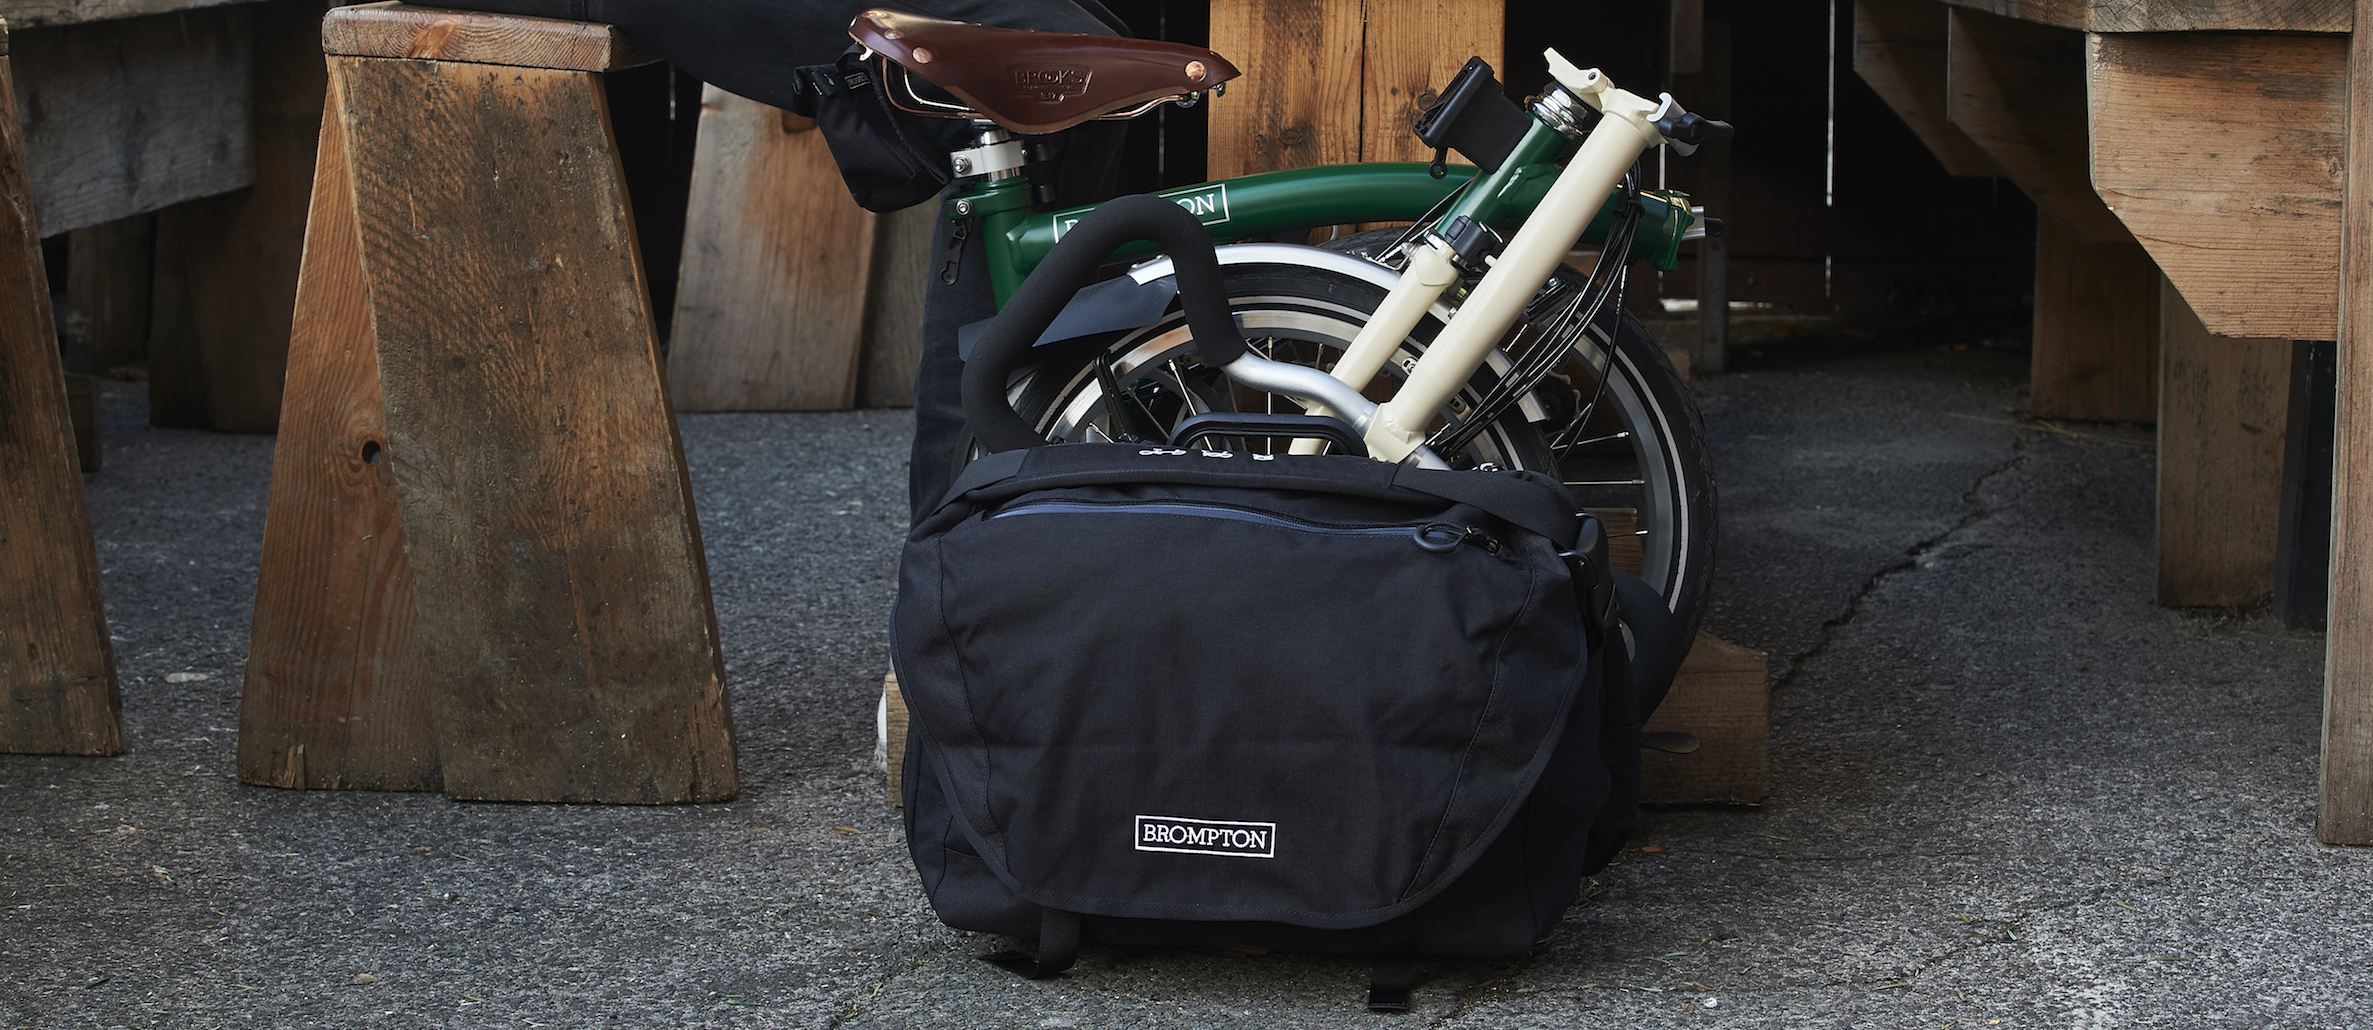 The Brompton Luggage System